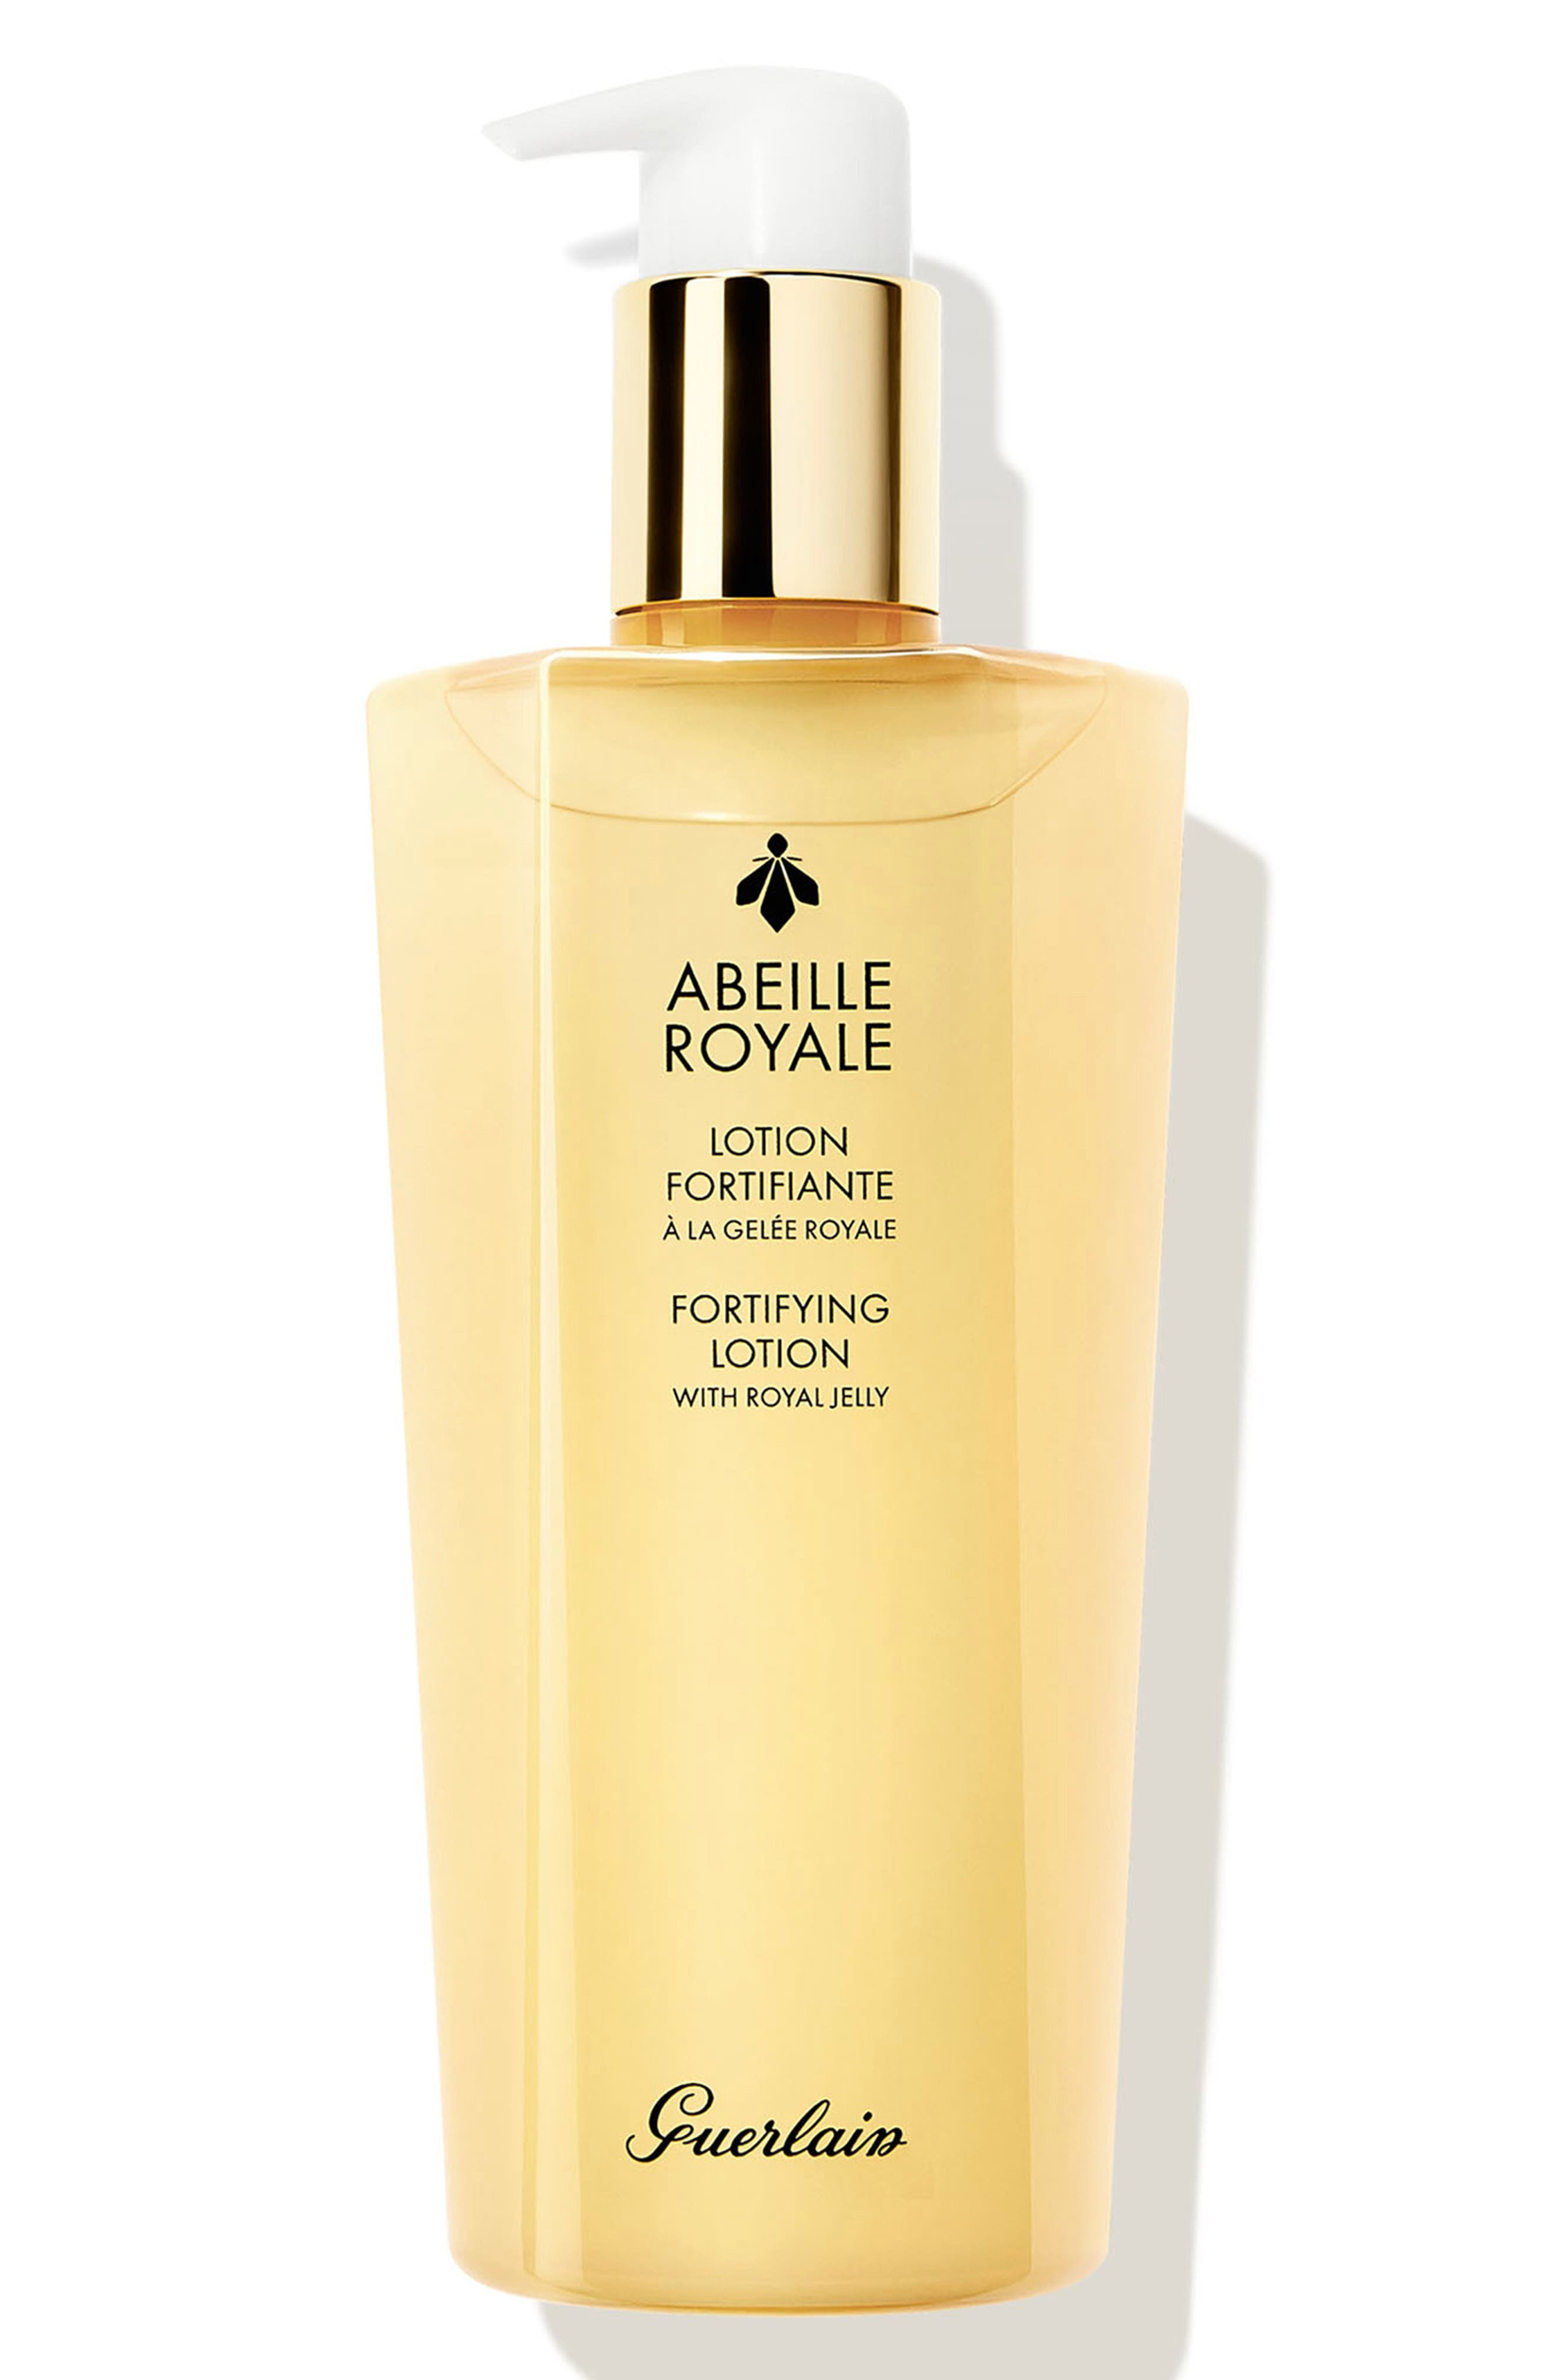 Abeille Royale Anti-Aging Fortifying Lotion Toner